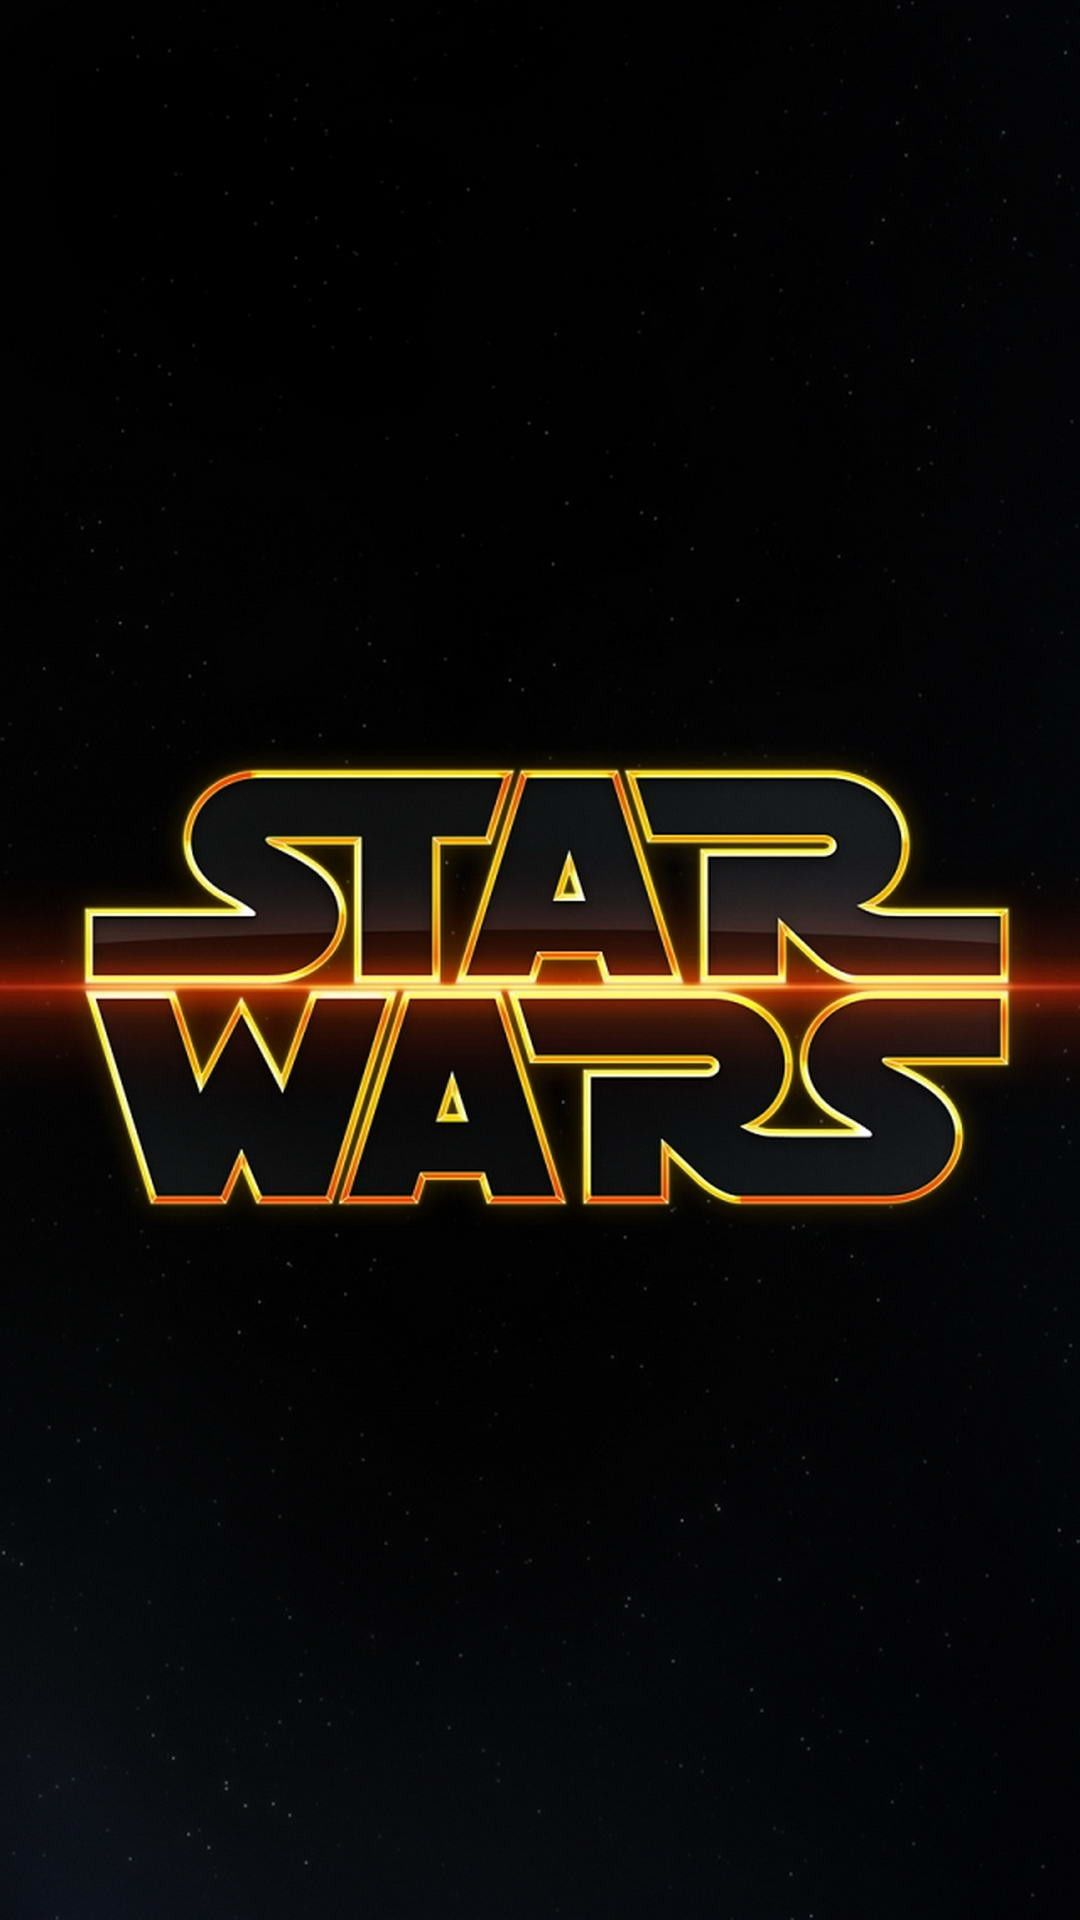 Star Wars iPhone 6 - Android, iPhone, Desktop HD Backgrounds / Wallpapers (1080p, 4k) (354319) - Sci-fi